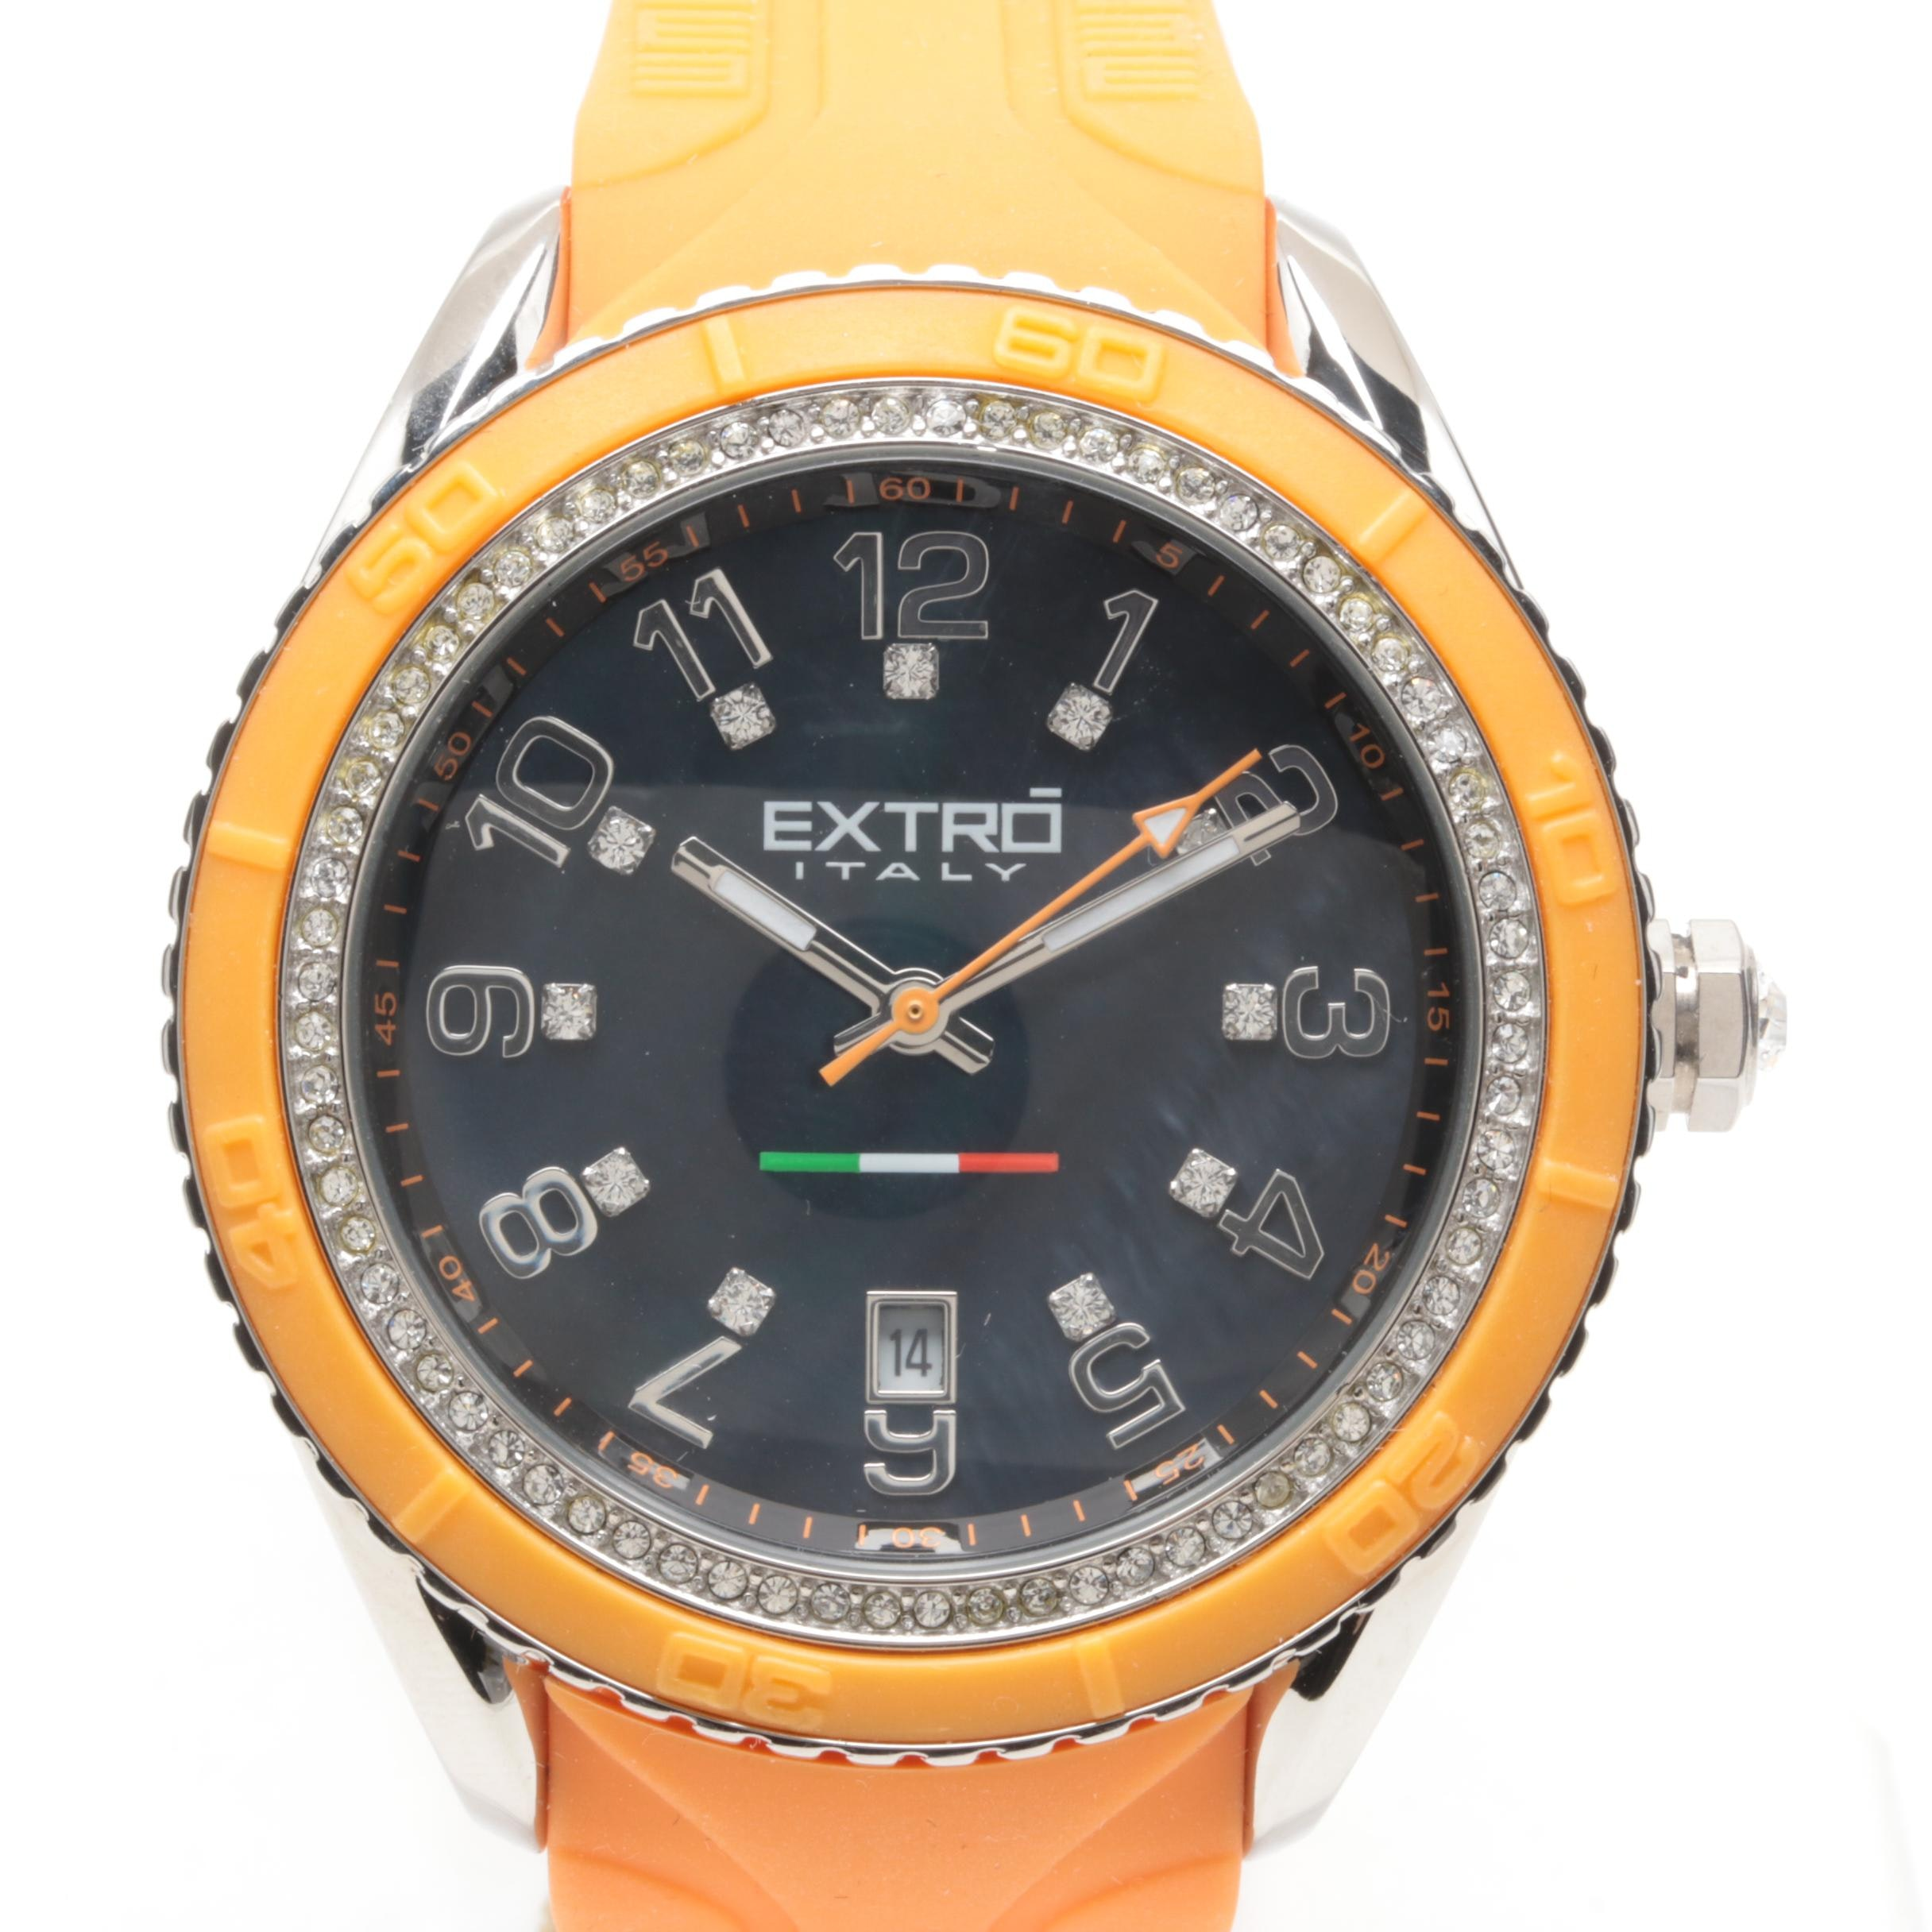 Extro Stainless Steel and Rubber Wristwatch with Glass Crystals